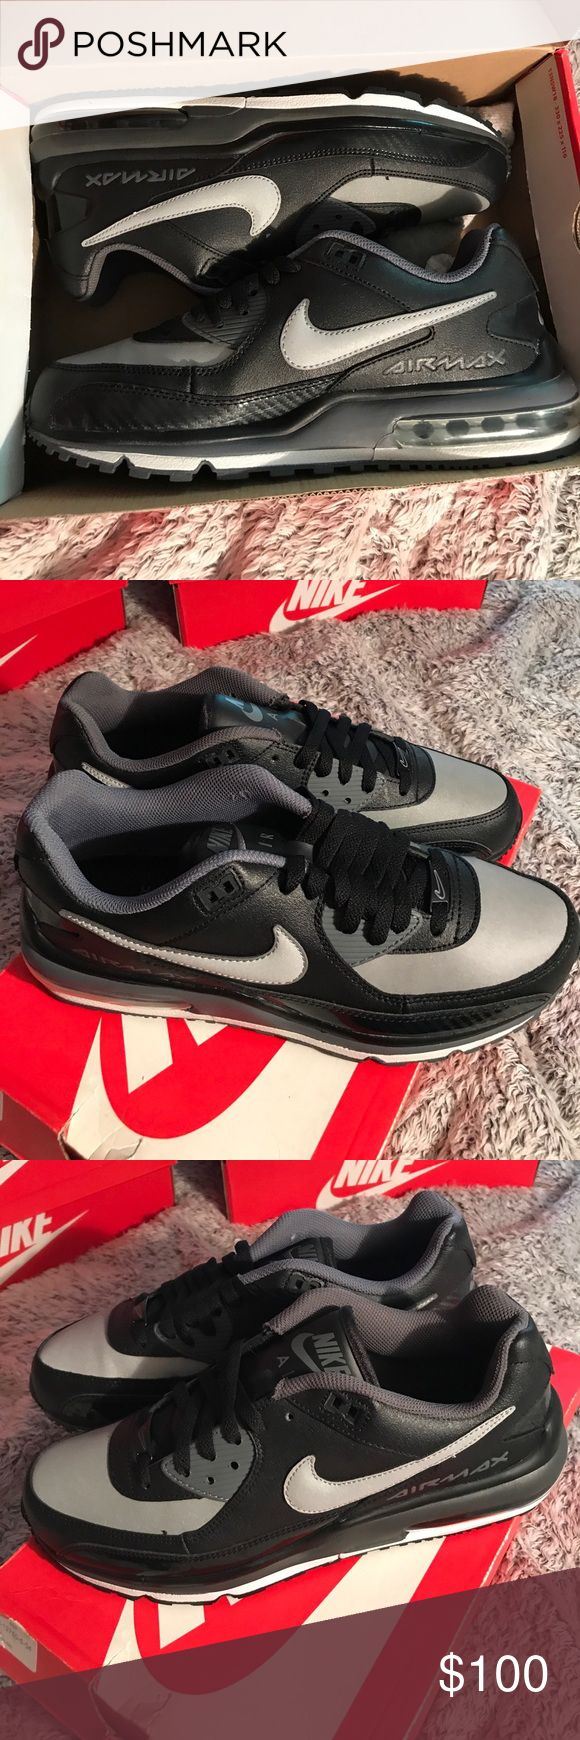 Nike Air Max Wright Brand new, perfect condition, no flaws, size 10.5, black and grey Nike Shoes Sneakers